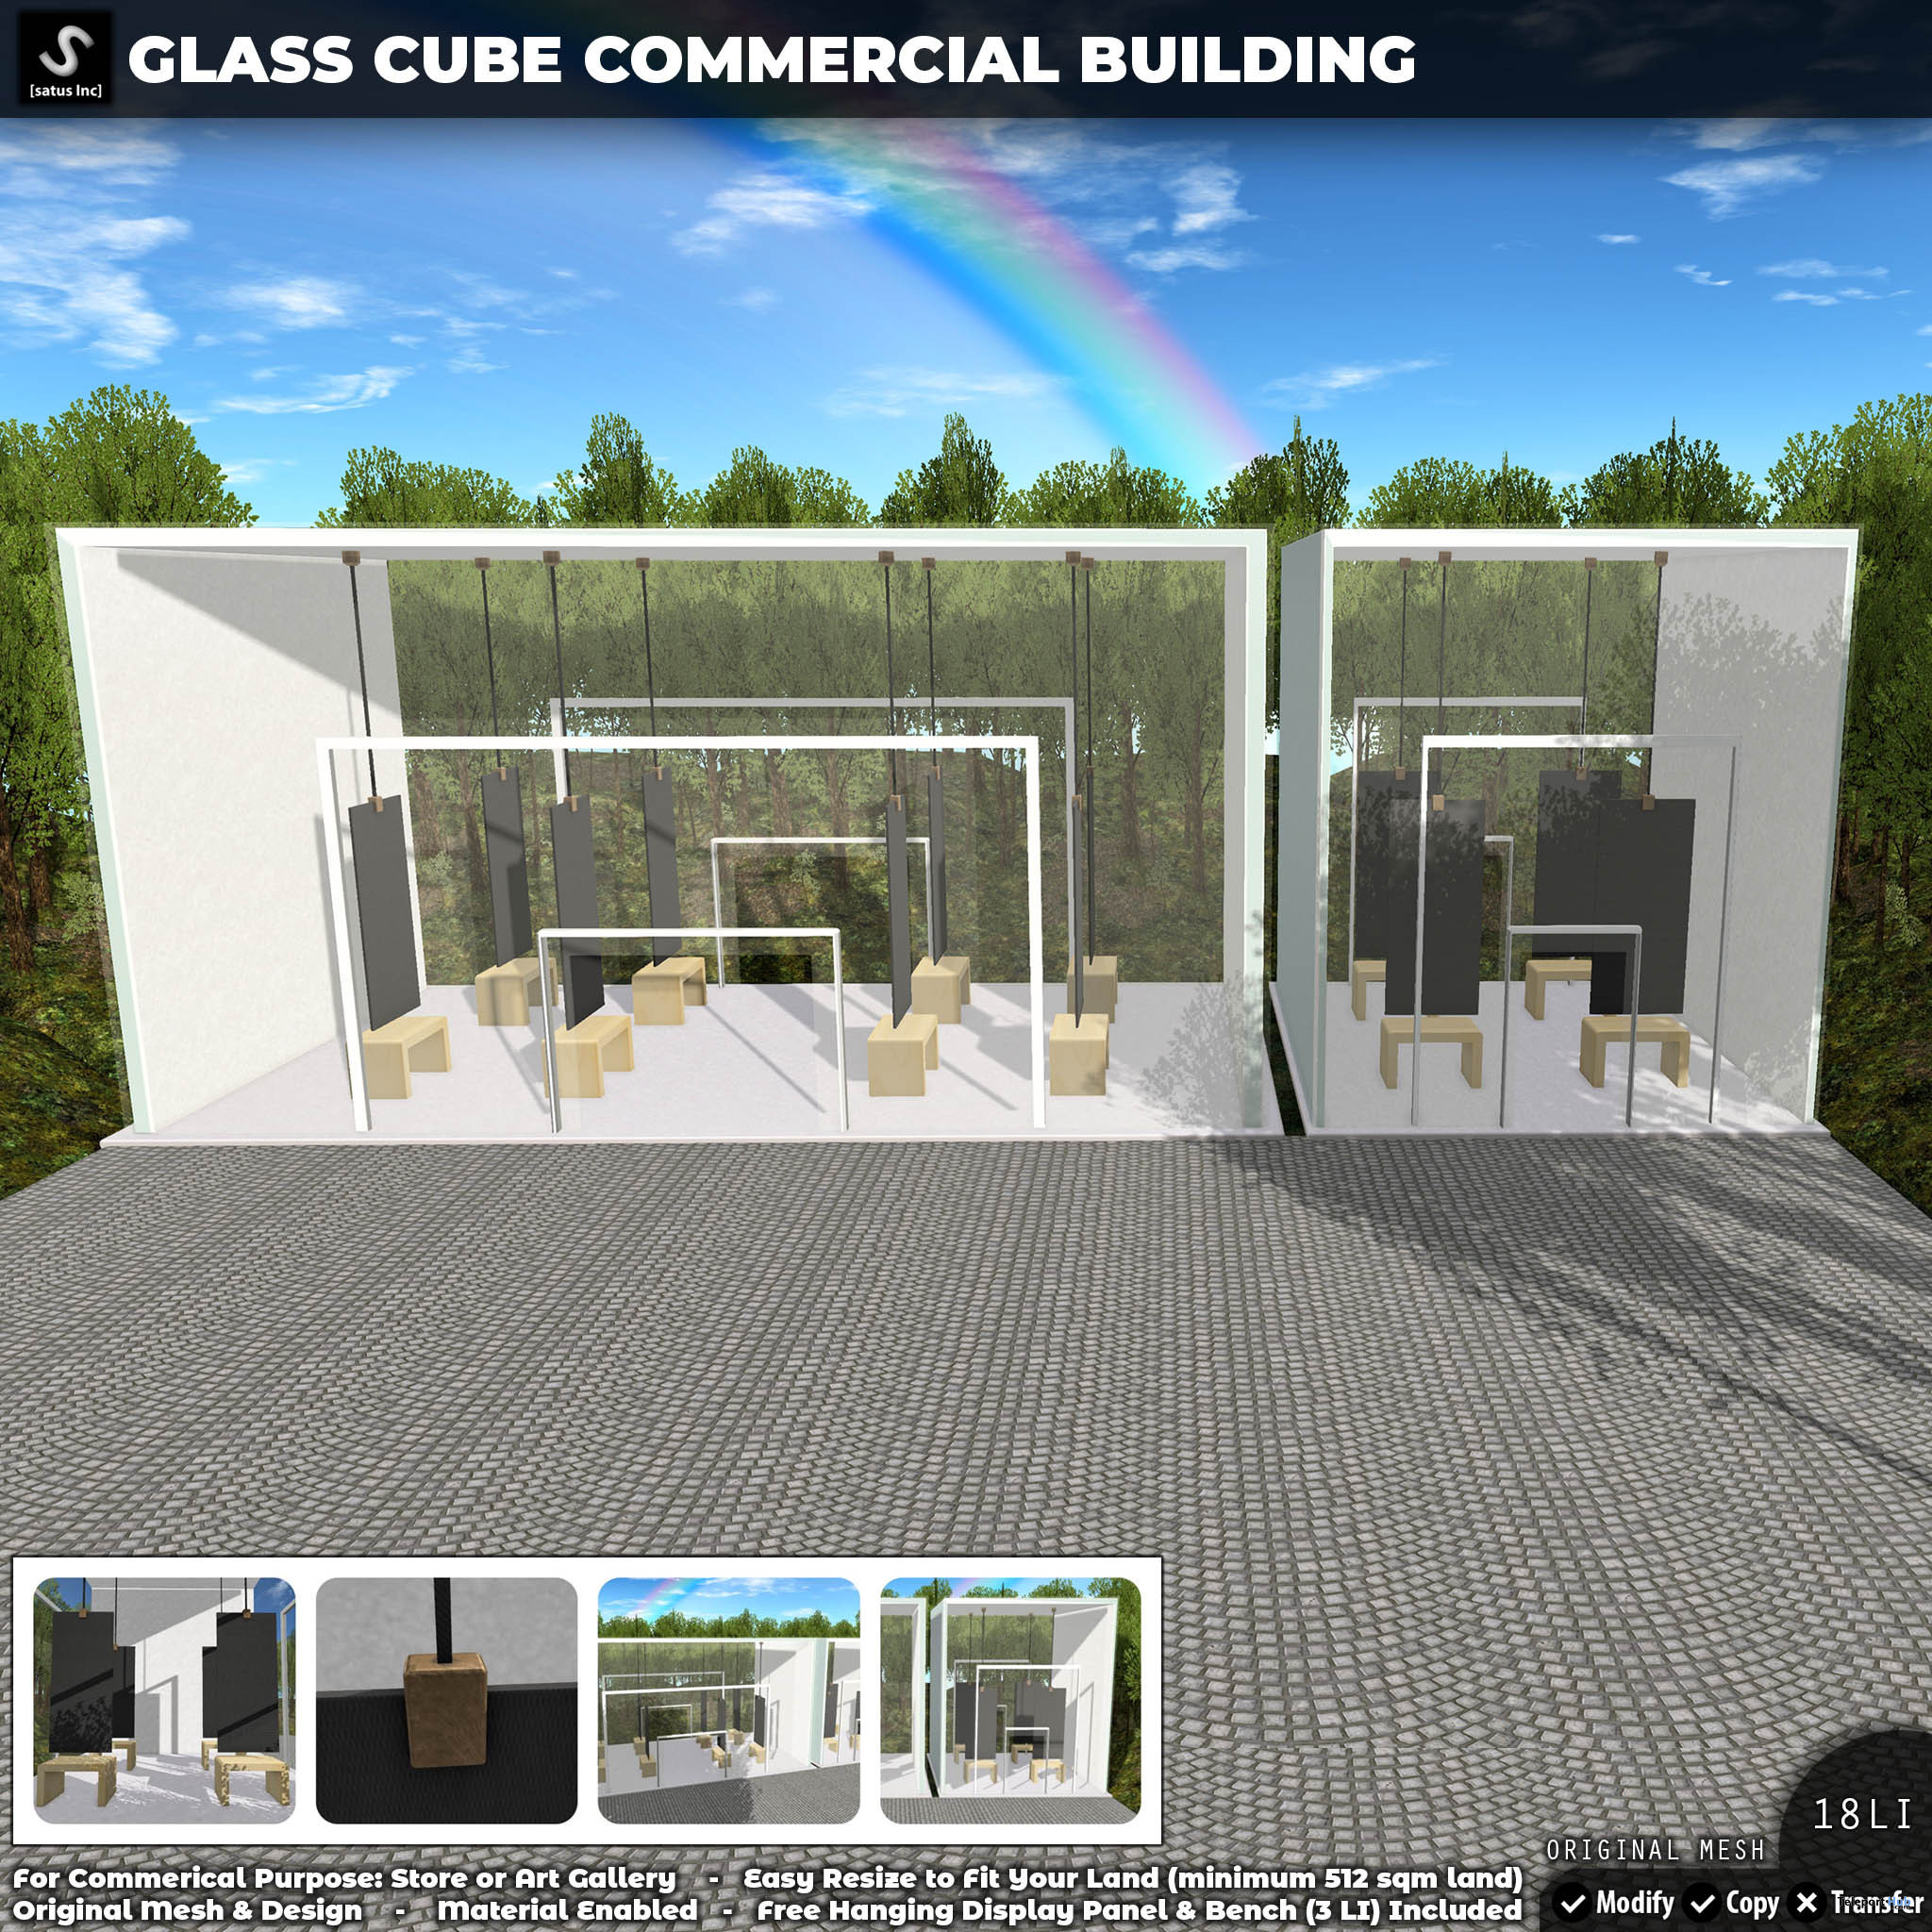 New Release: Glass Cube Commercial Building by [satus Inc] - Teleport Hub - teleporthub.com